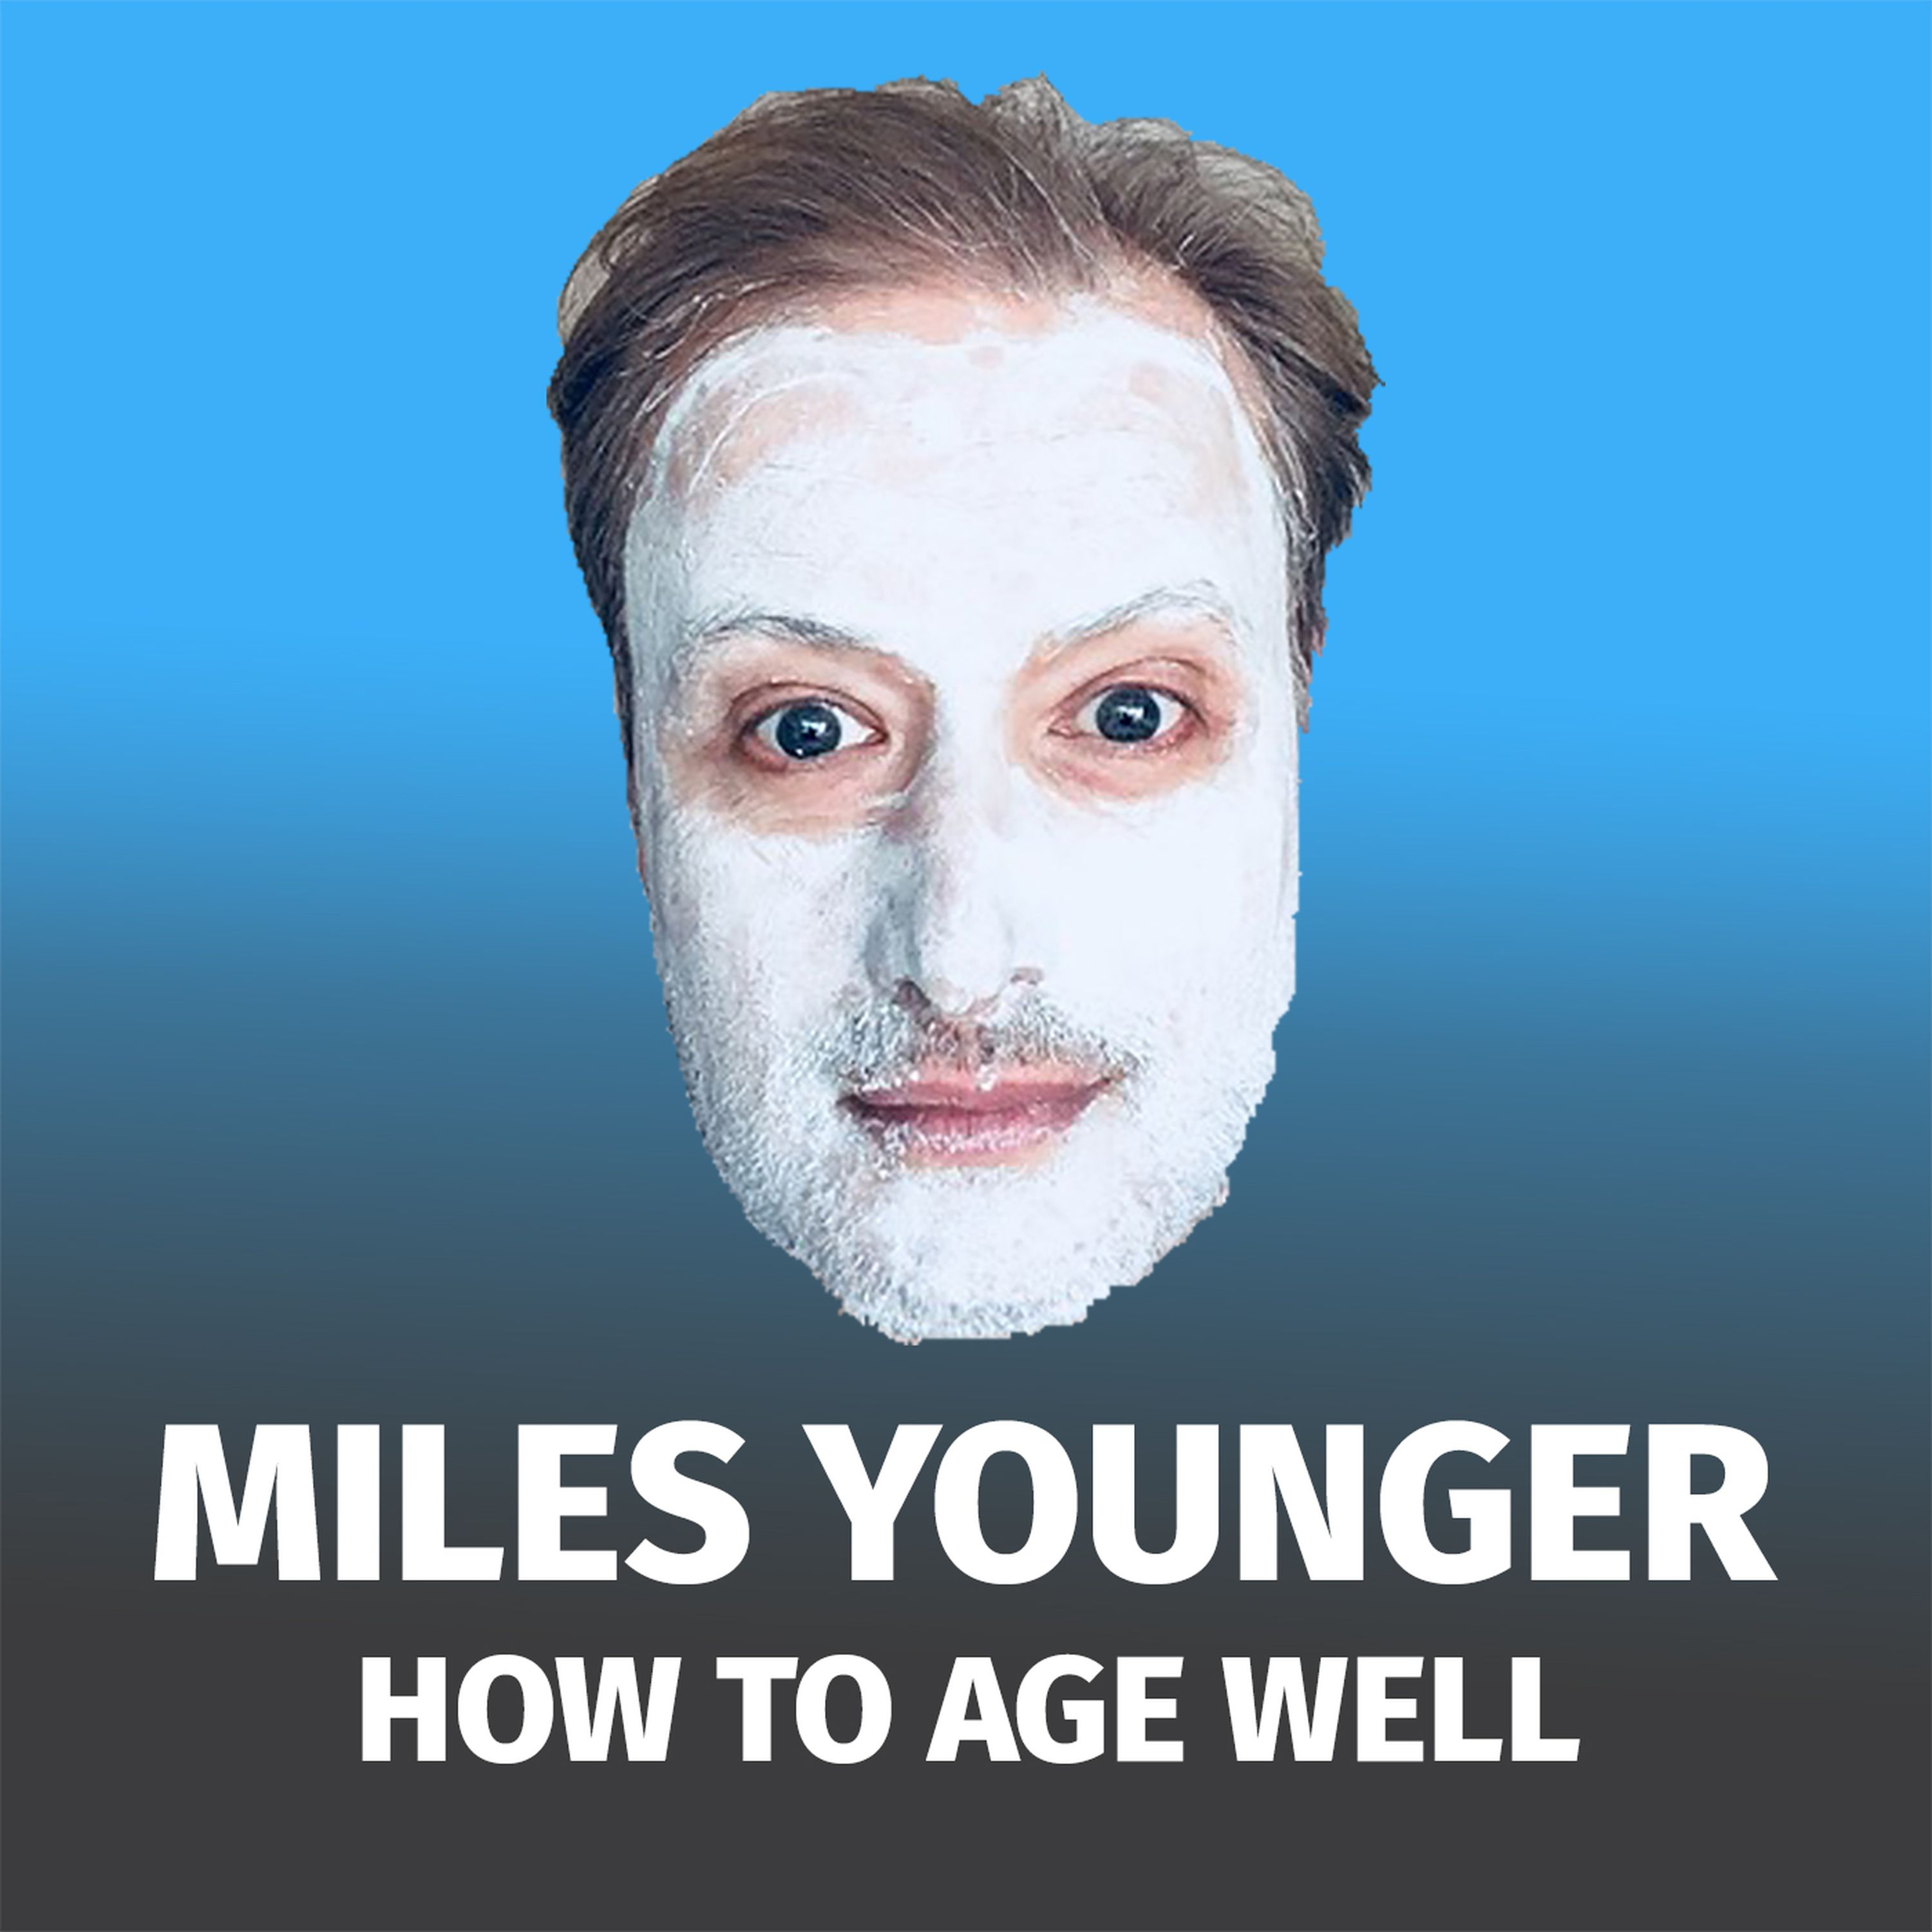 Miles Younger - How to Age Well - Helen Lederer